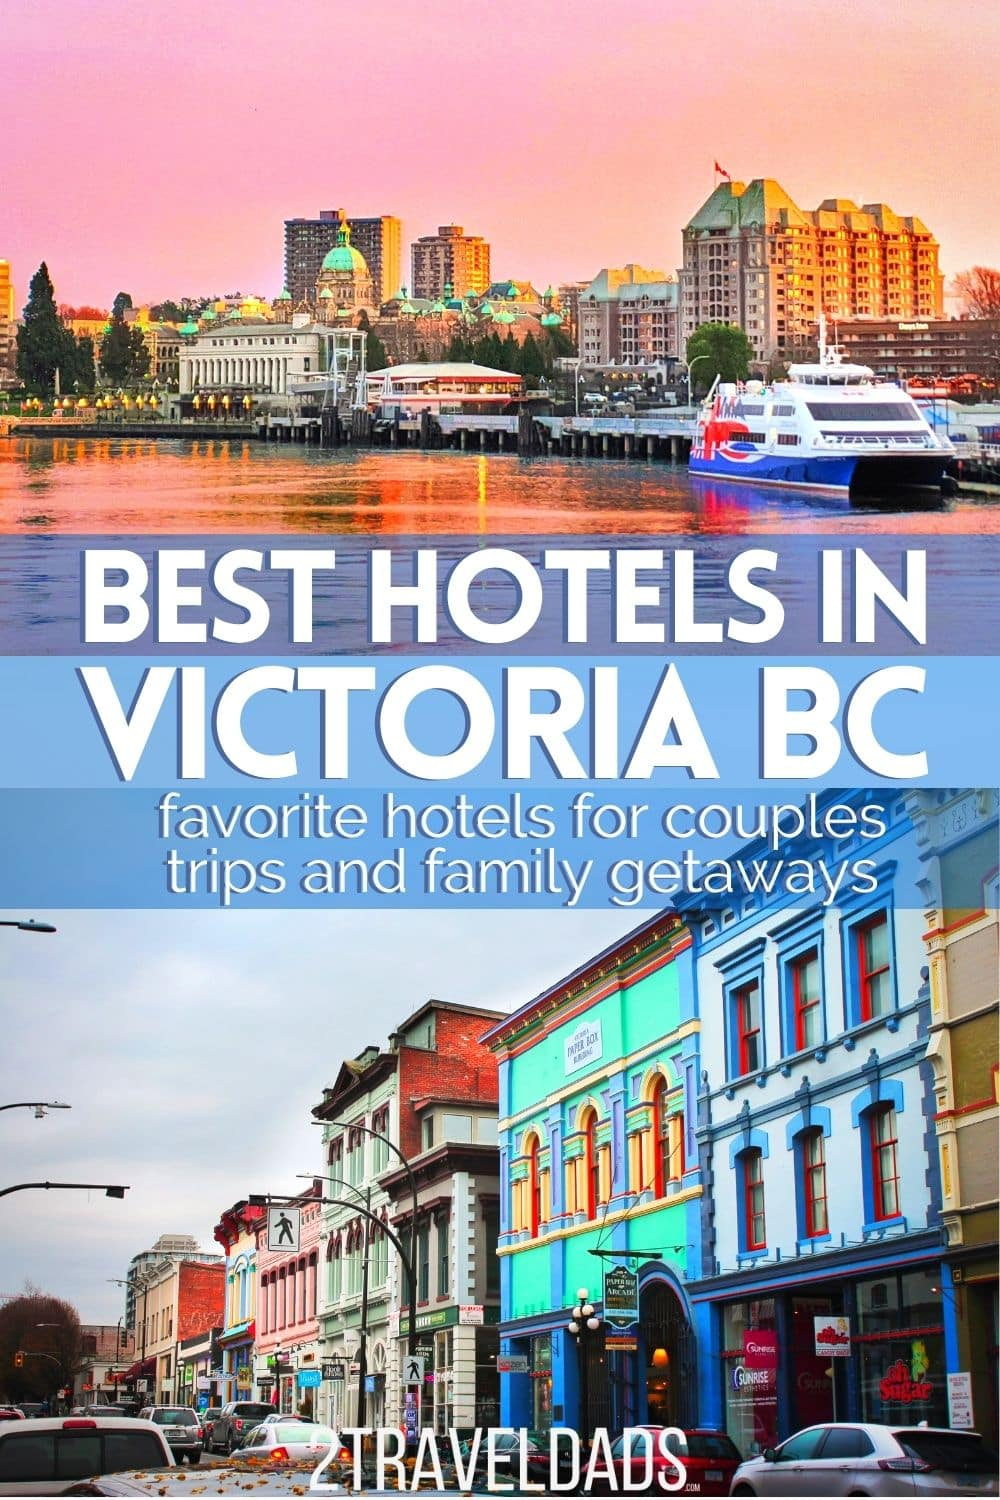 After 8 trips to Victoria BC, we know where to stay.We review our favorite hotels in Victoria, BC, from budget friendly to top tier. We suggest some unique accommodations as well as trusted travel brands with hotels in Victoria. We have some really great recommendations!